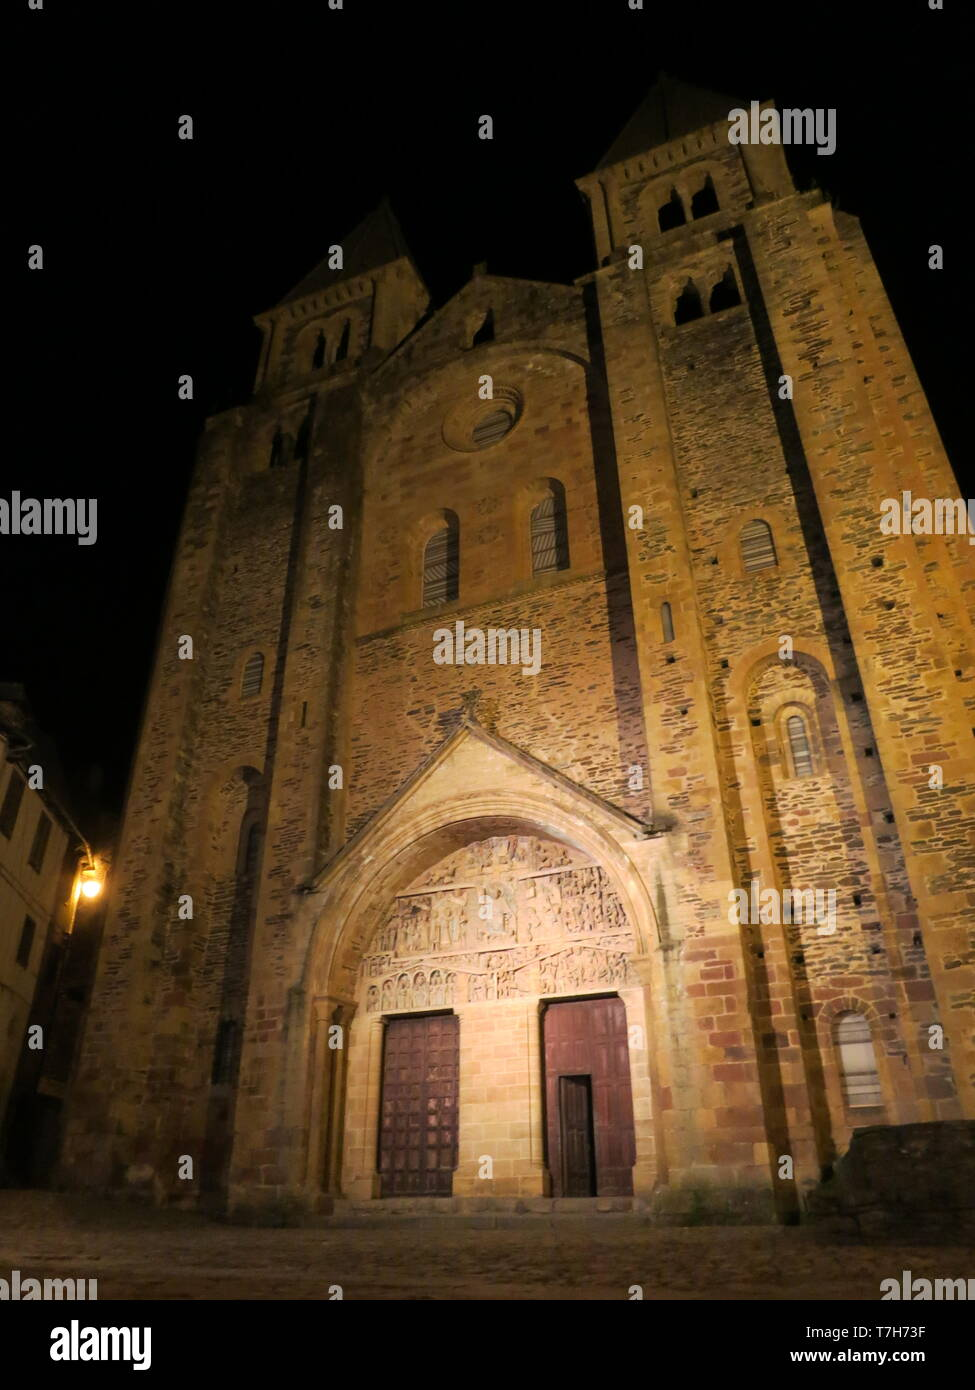 Abbey-Church of Saint-Foy in Conques during the night. A historic town along the Via Podiensis in southern France. - Stock Image